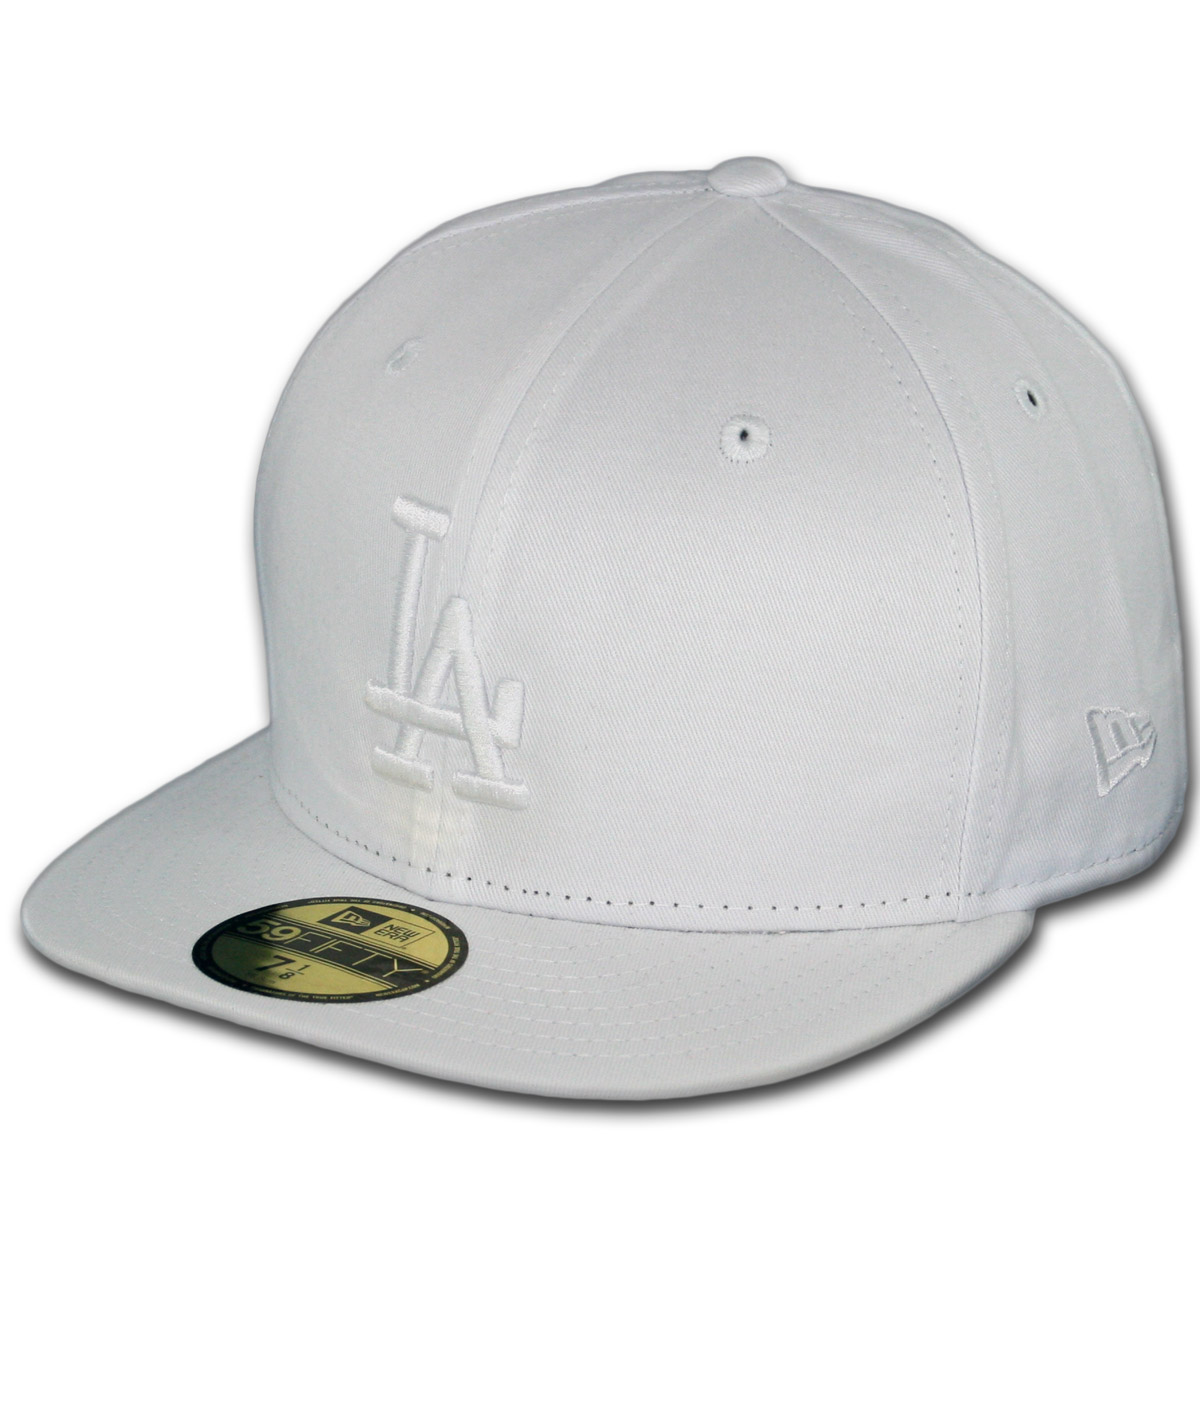 New Era 59Fifty Los Angeles Dodgers Fitted Whiteout, All